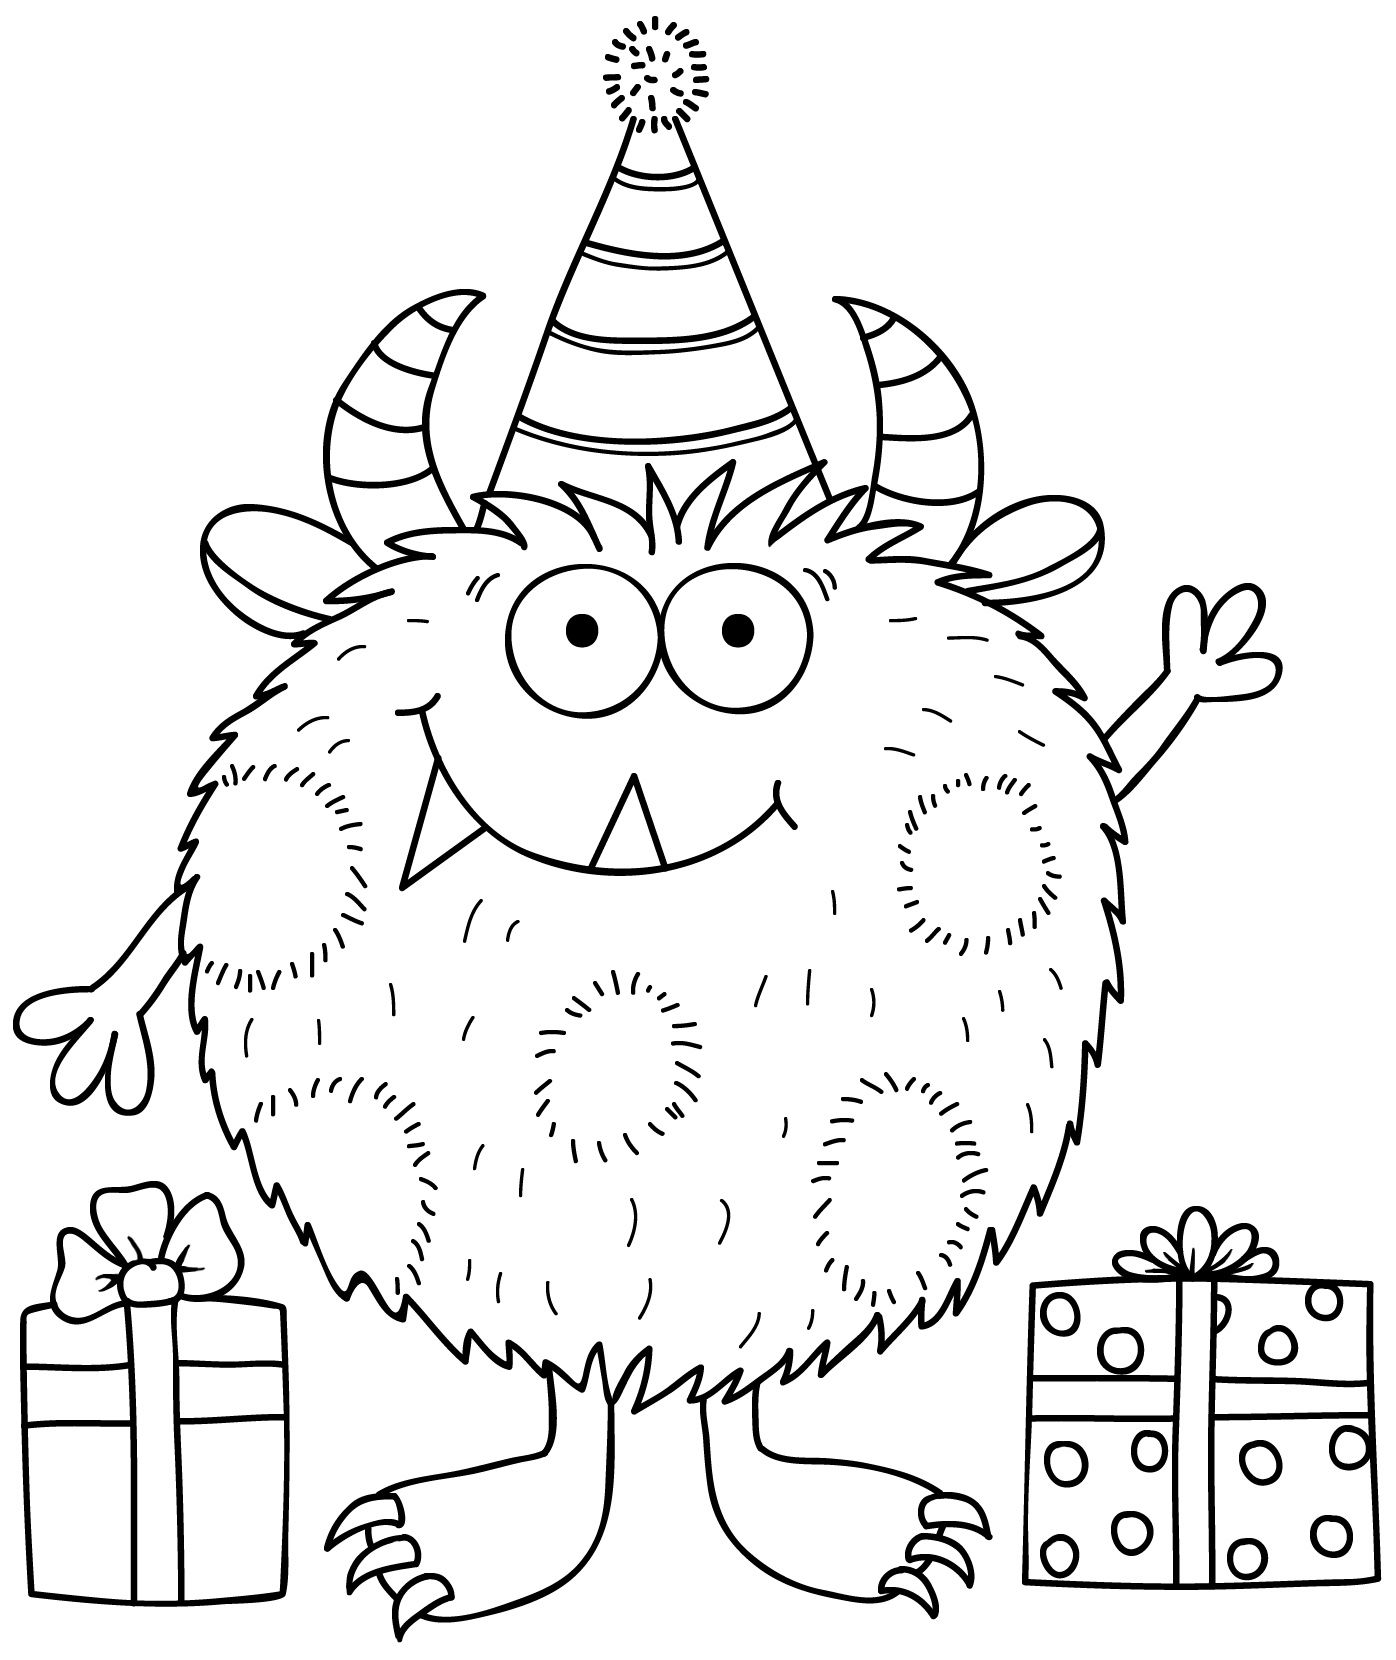 Katehadfielddesigns Google Suche Monster Coloring Pages Digi Stamps Monster Quilt